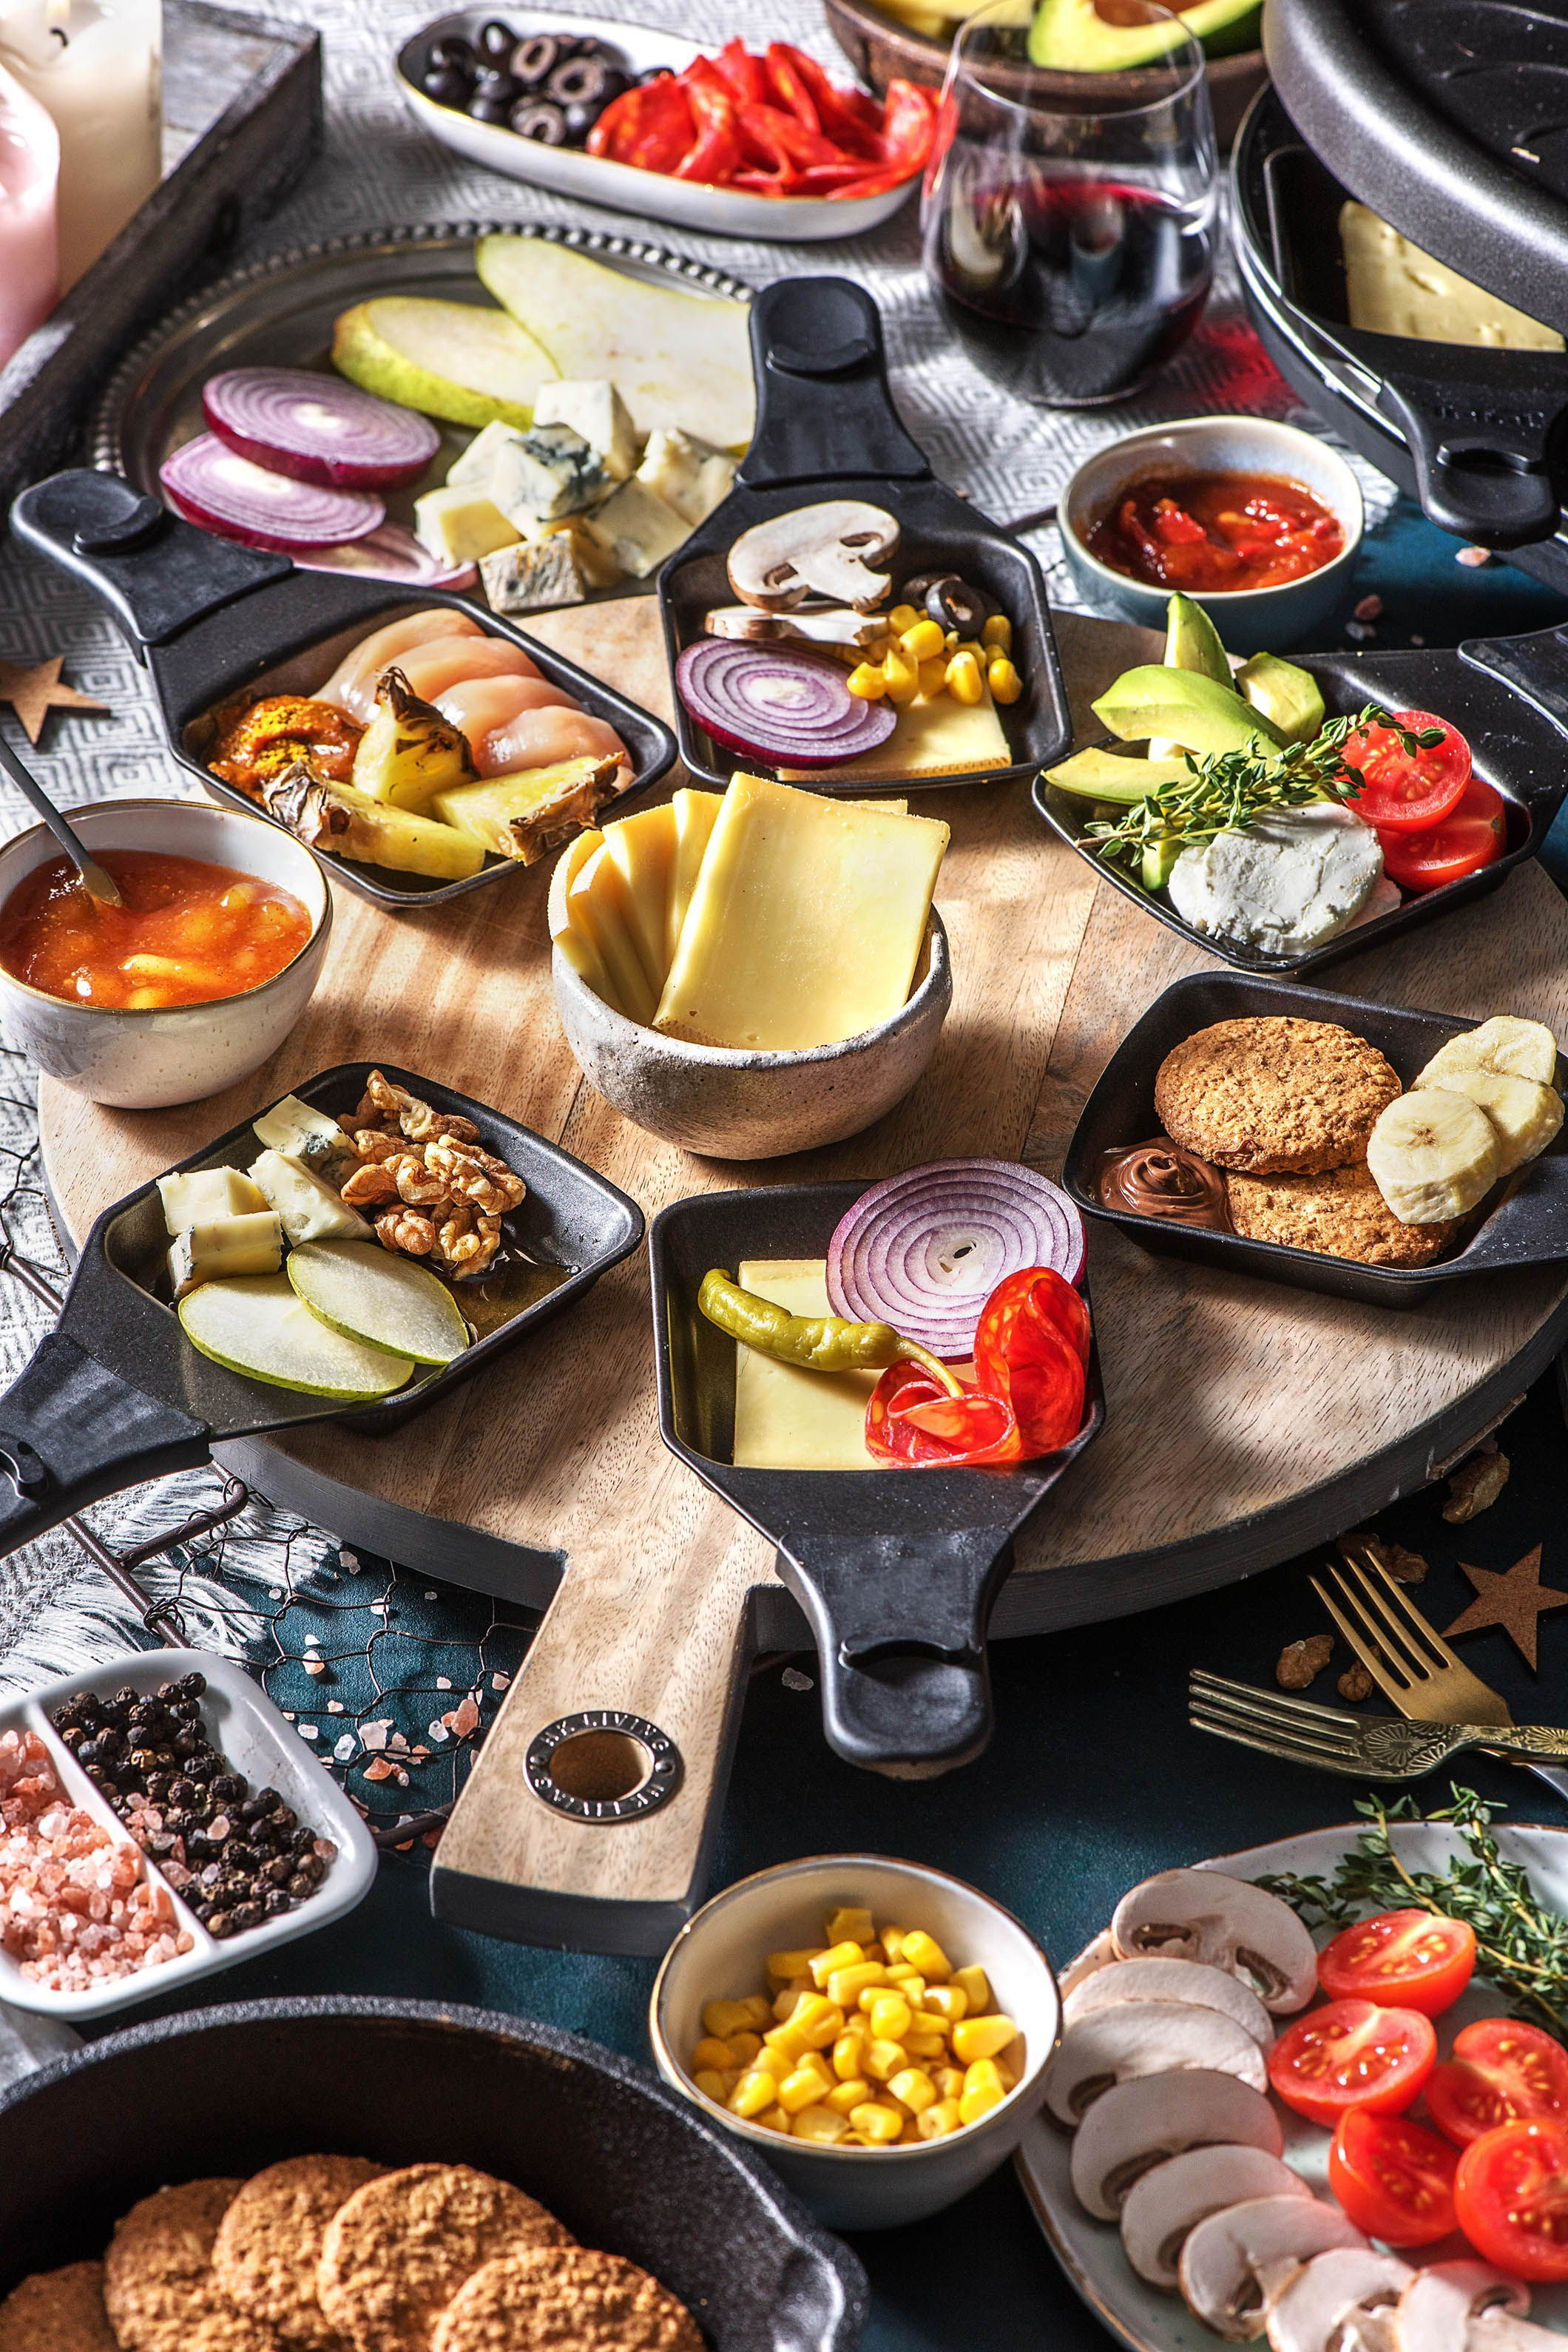 6 simple raclette variations for New Years  HelloFresh B  6 einfache Raclette Variationen für Silvester  HelloFresh Blog Recipe for 6 simple raclette variations for...